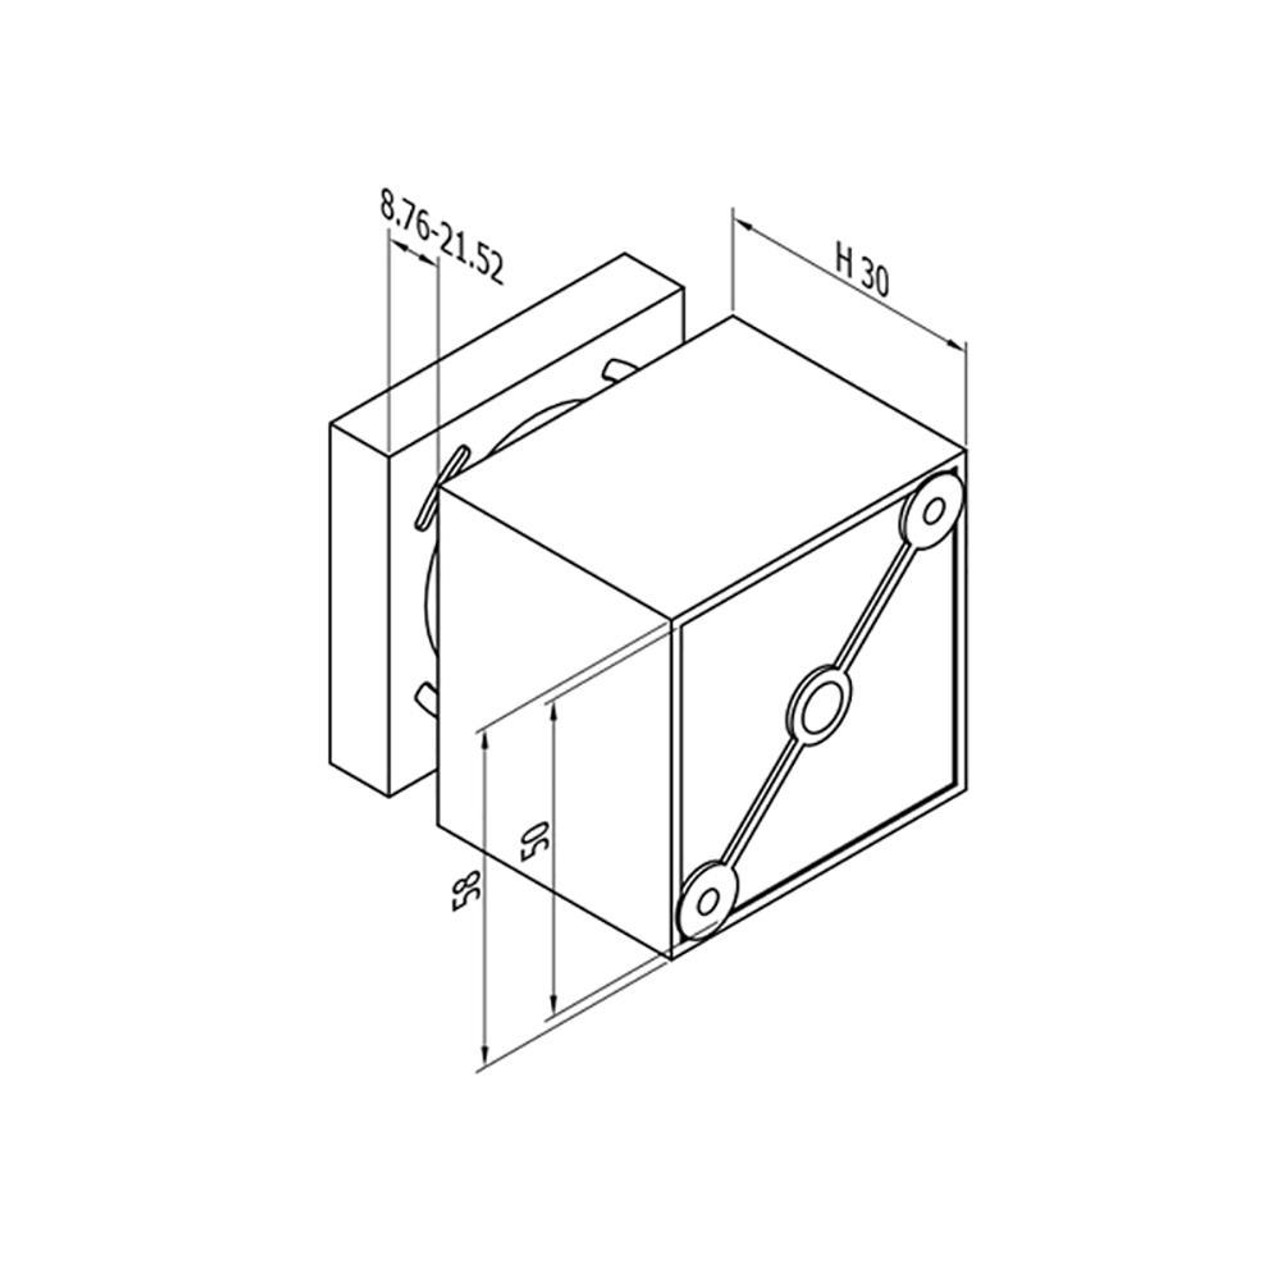 Square Glass Standoff – Fits 8.76 to 21.52 mm glass (CADD)